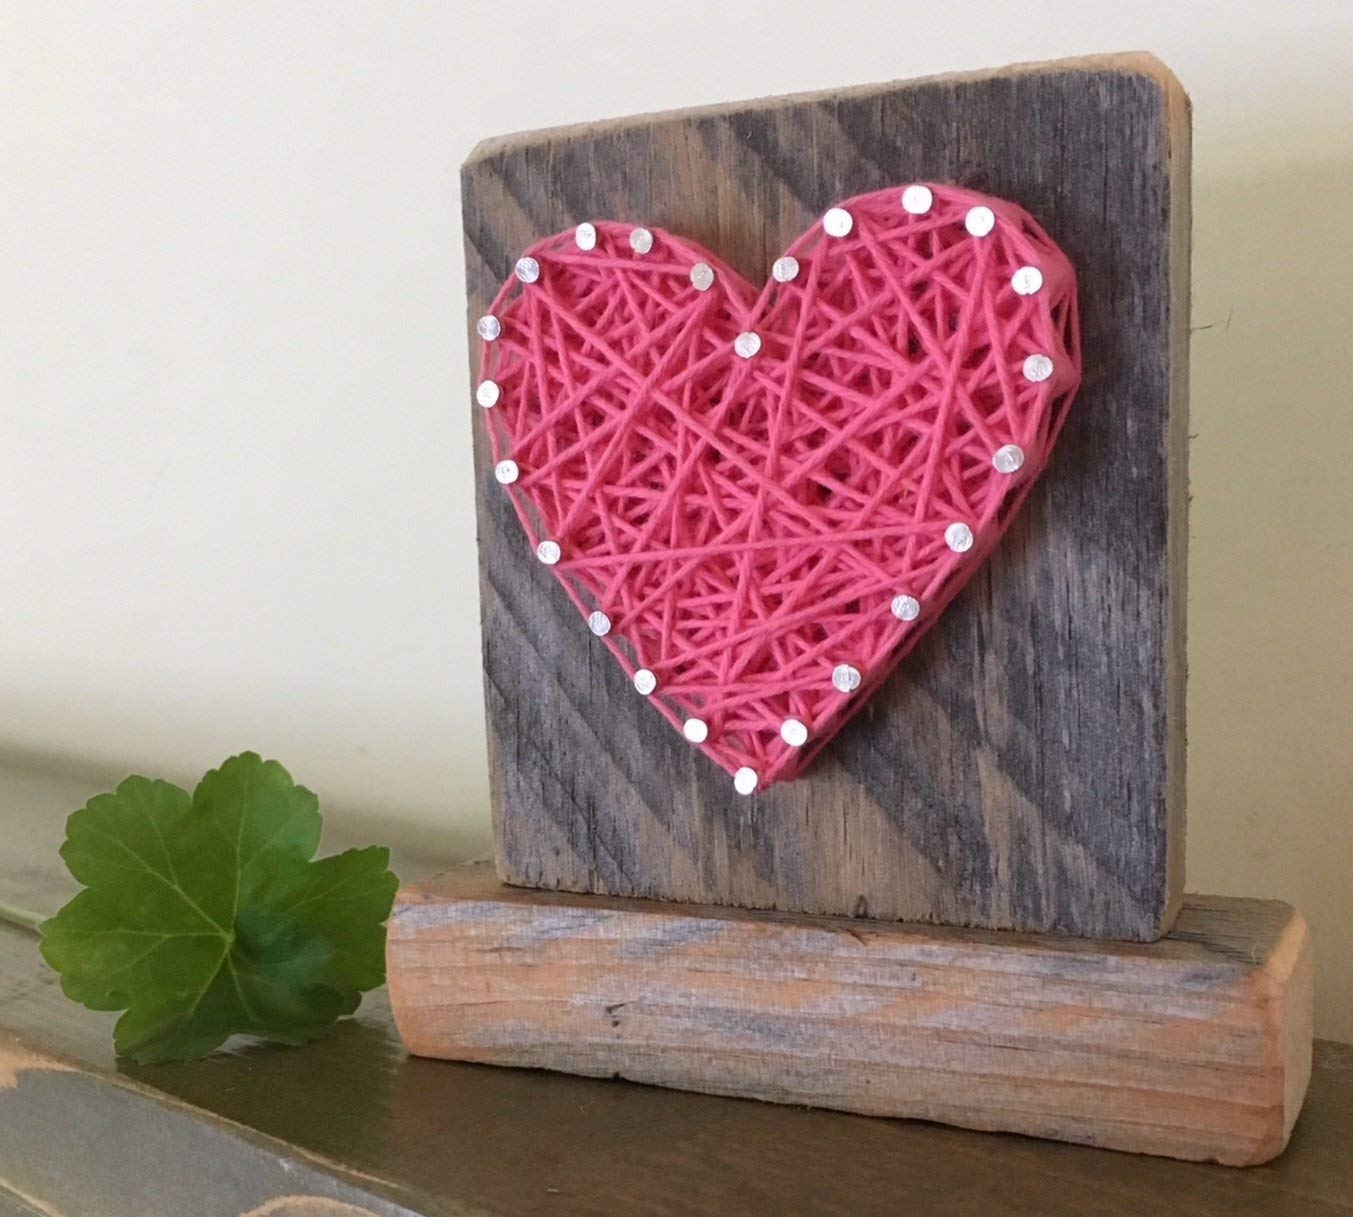 Sweet & small freestanding wooden pink string art heart sign. Perfect for Mother's Day, home accents, Wedding favors, Anniversary gifts, nursery decoration and just because gifts by Nail it Art.